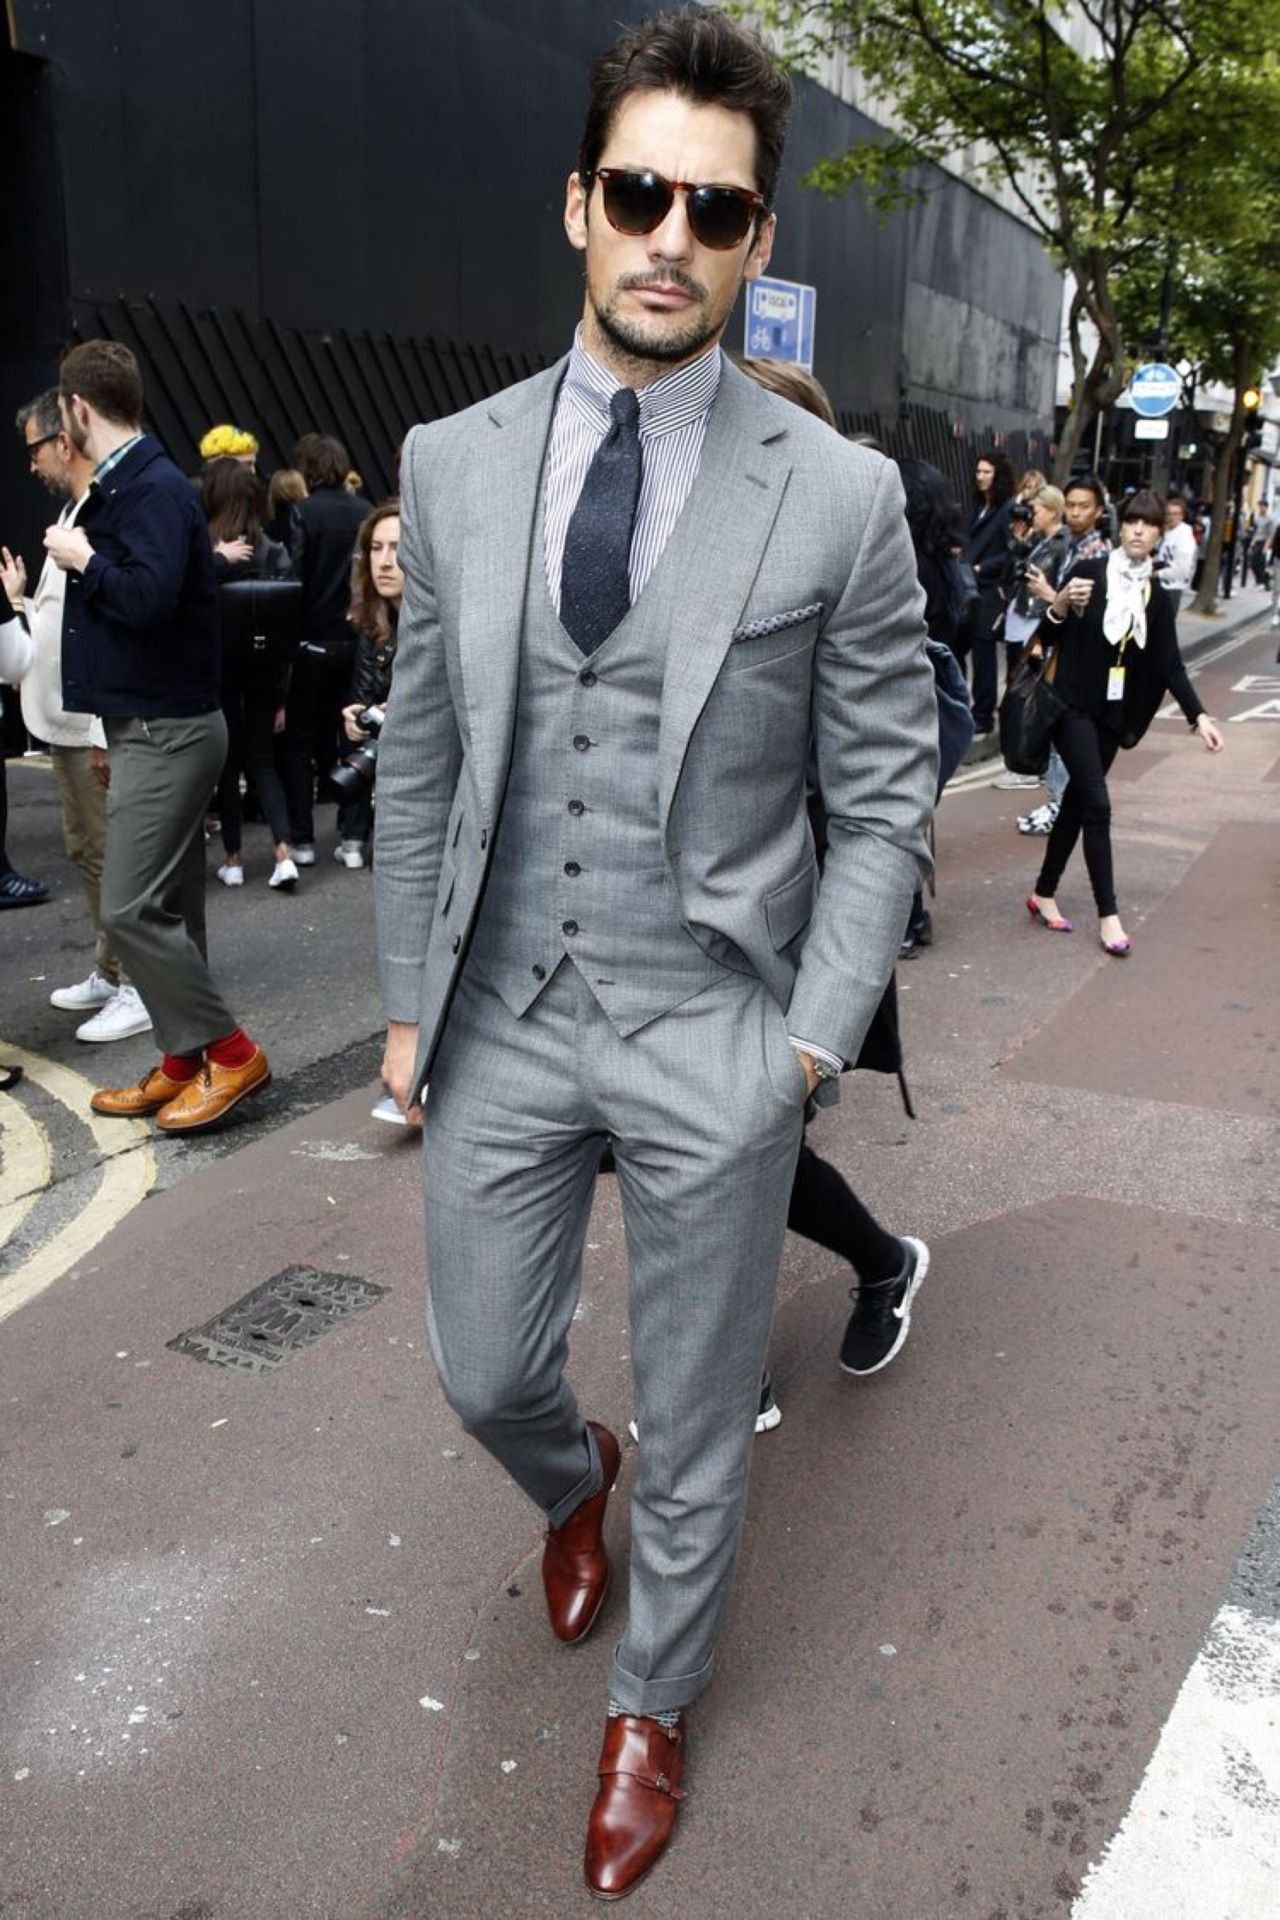 Chelsea Boots Casual | David gandy, Street styles and Street